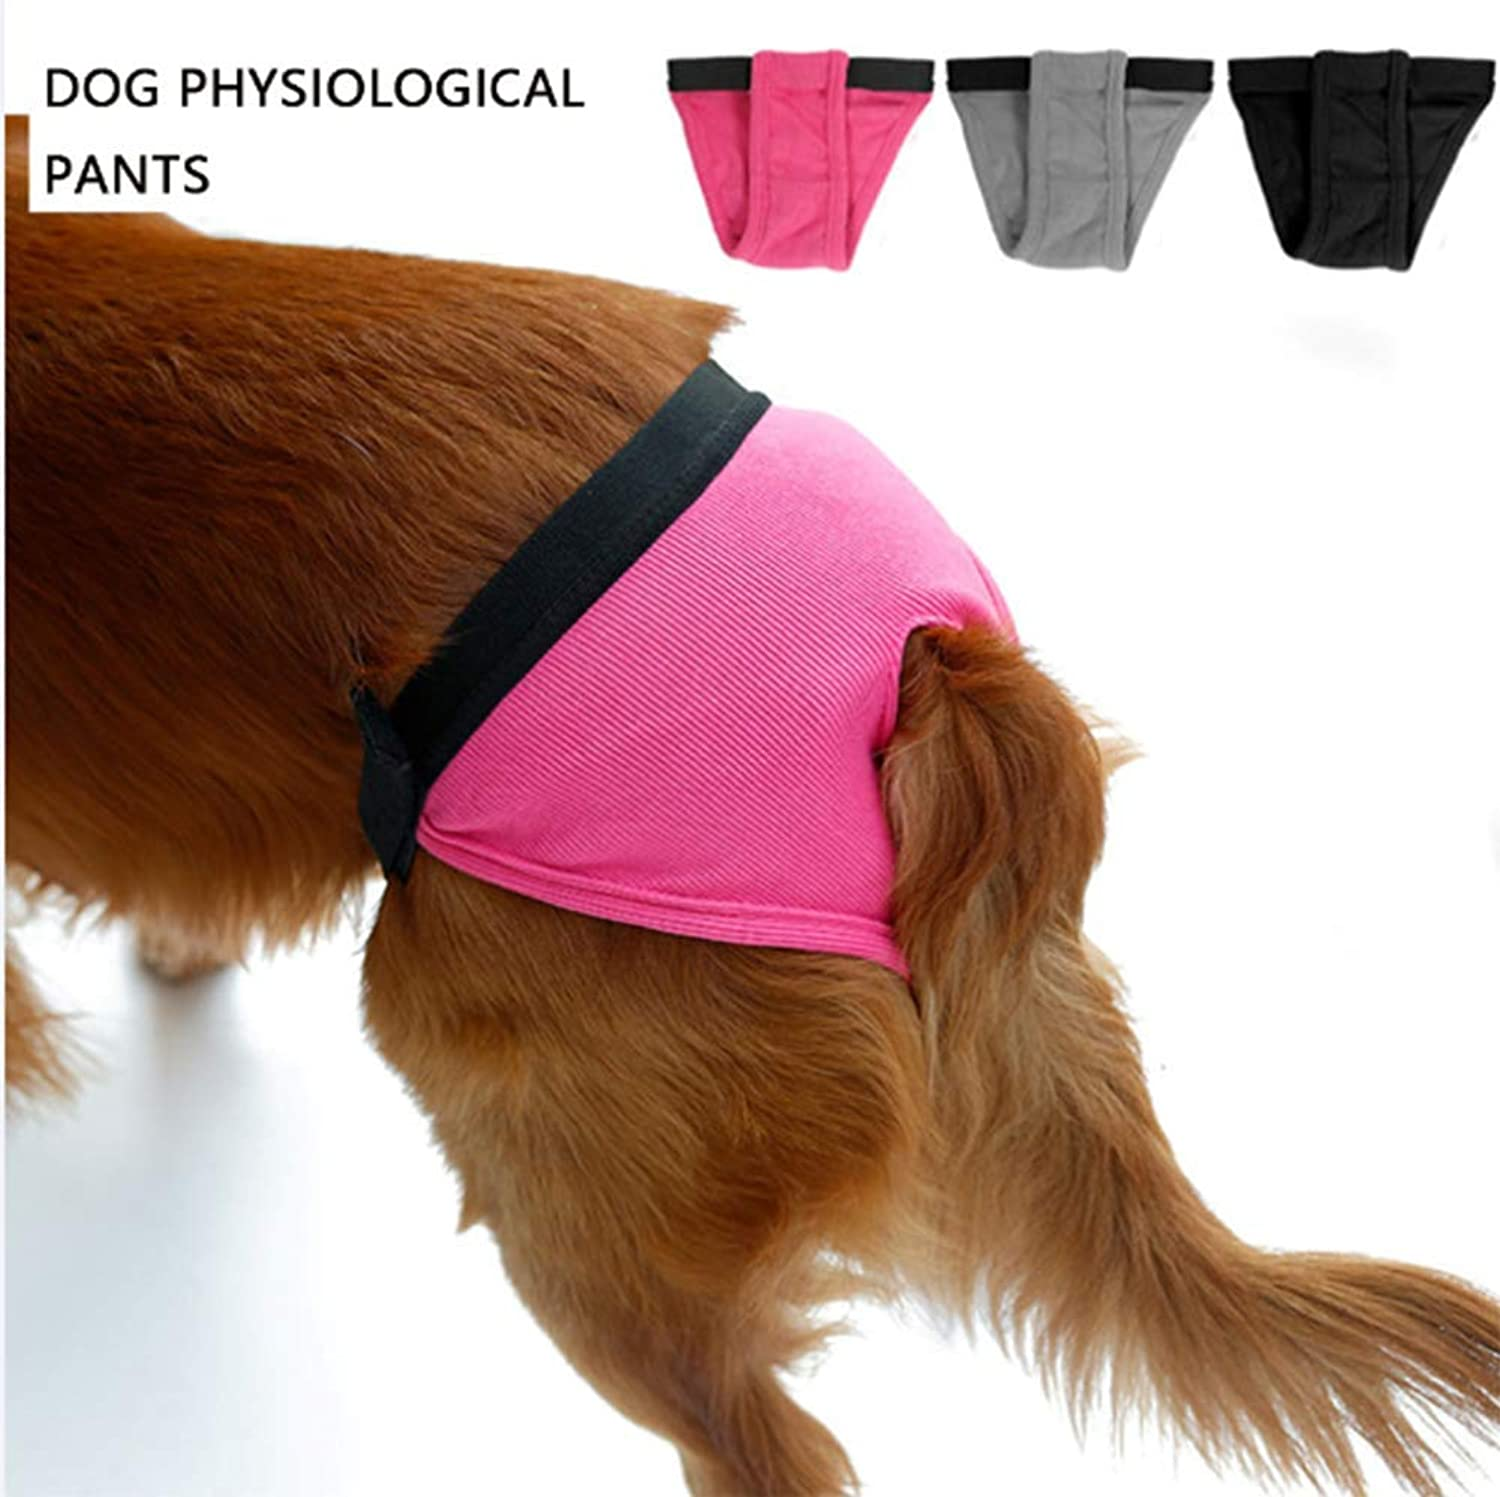 Reusable Diaper Pants Dog Girl with Belly Bag, Suitable for Dogs, S